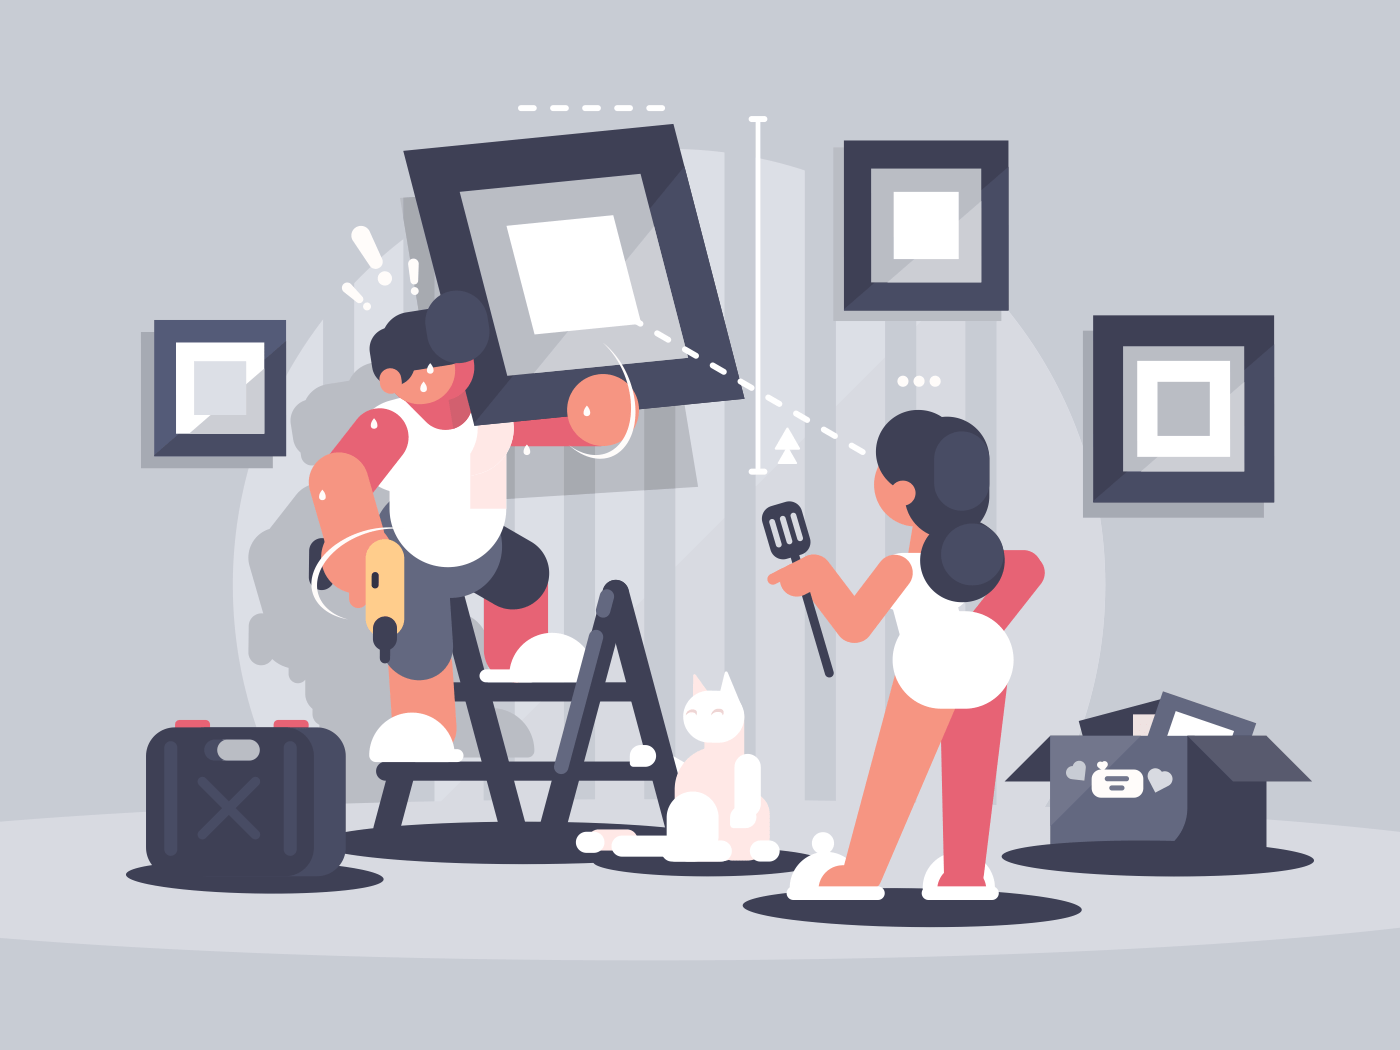 Guy hangs picture on wall. Wife guides husbands work. Vector illustration